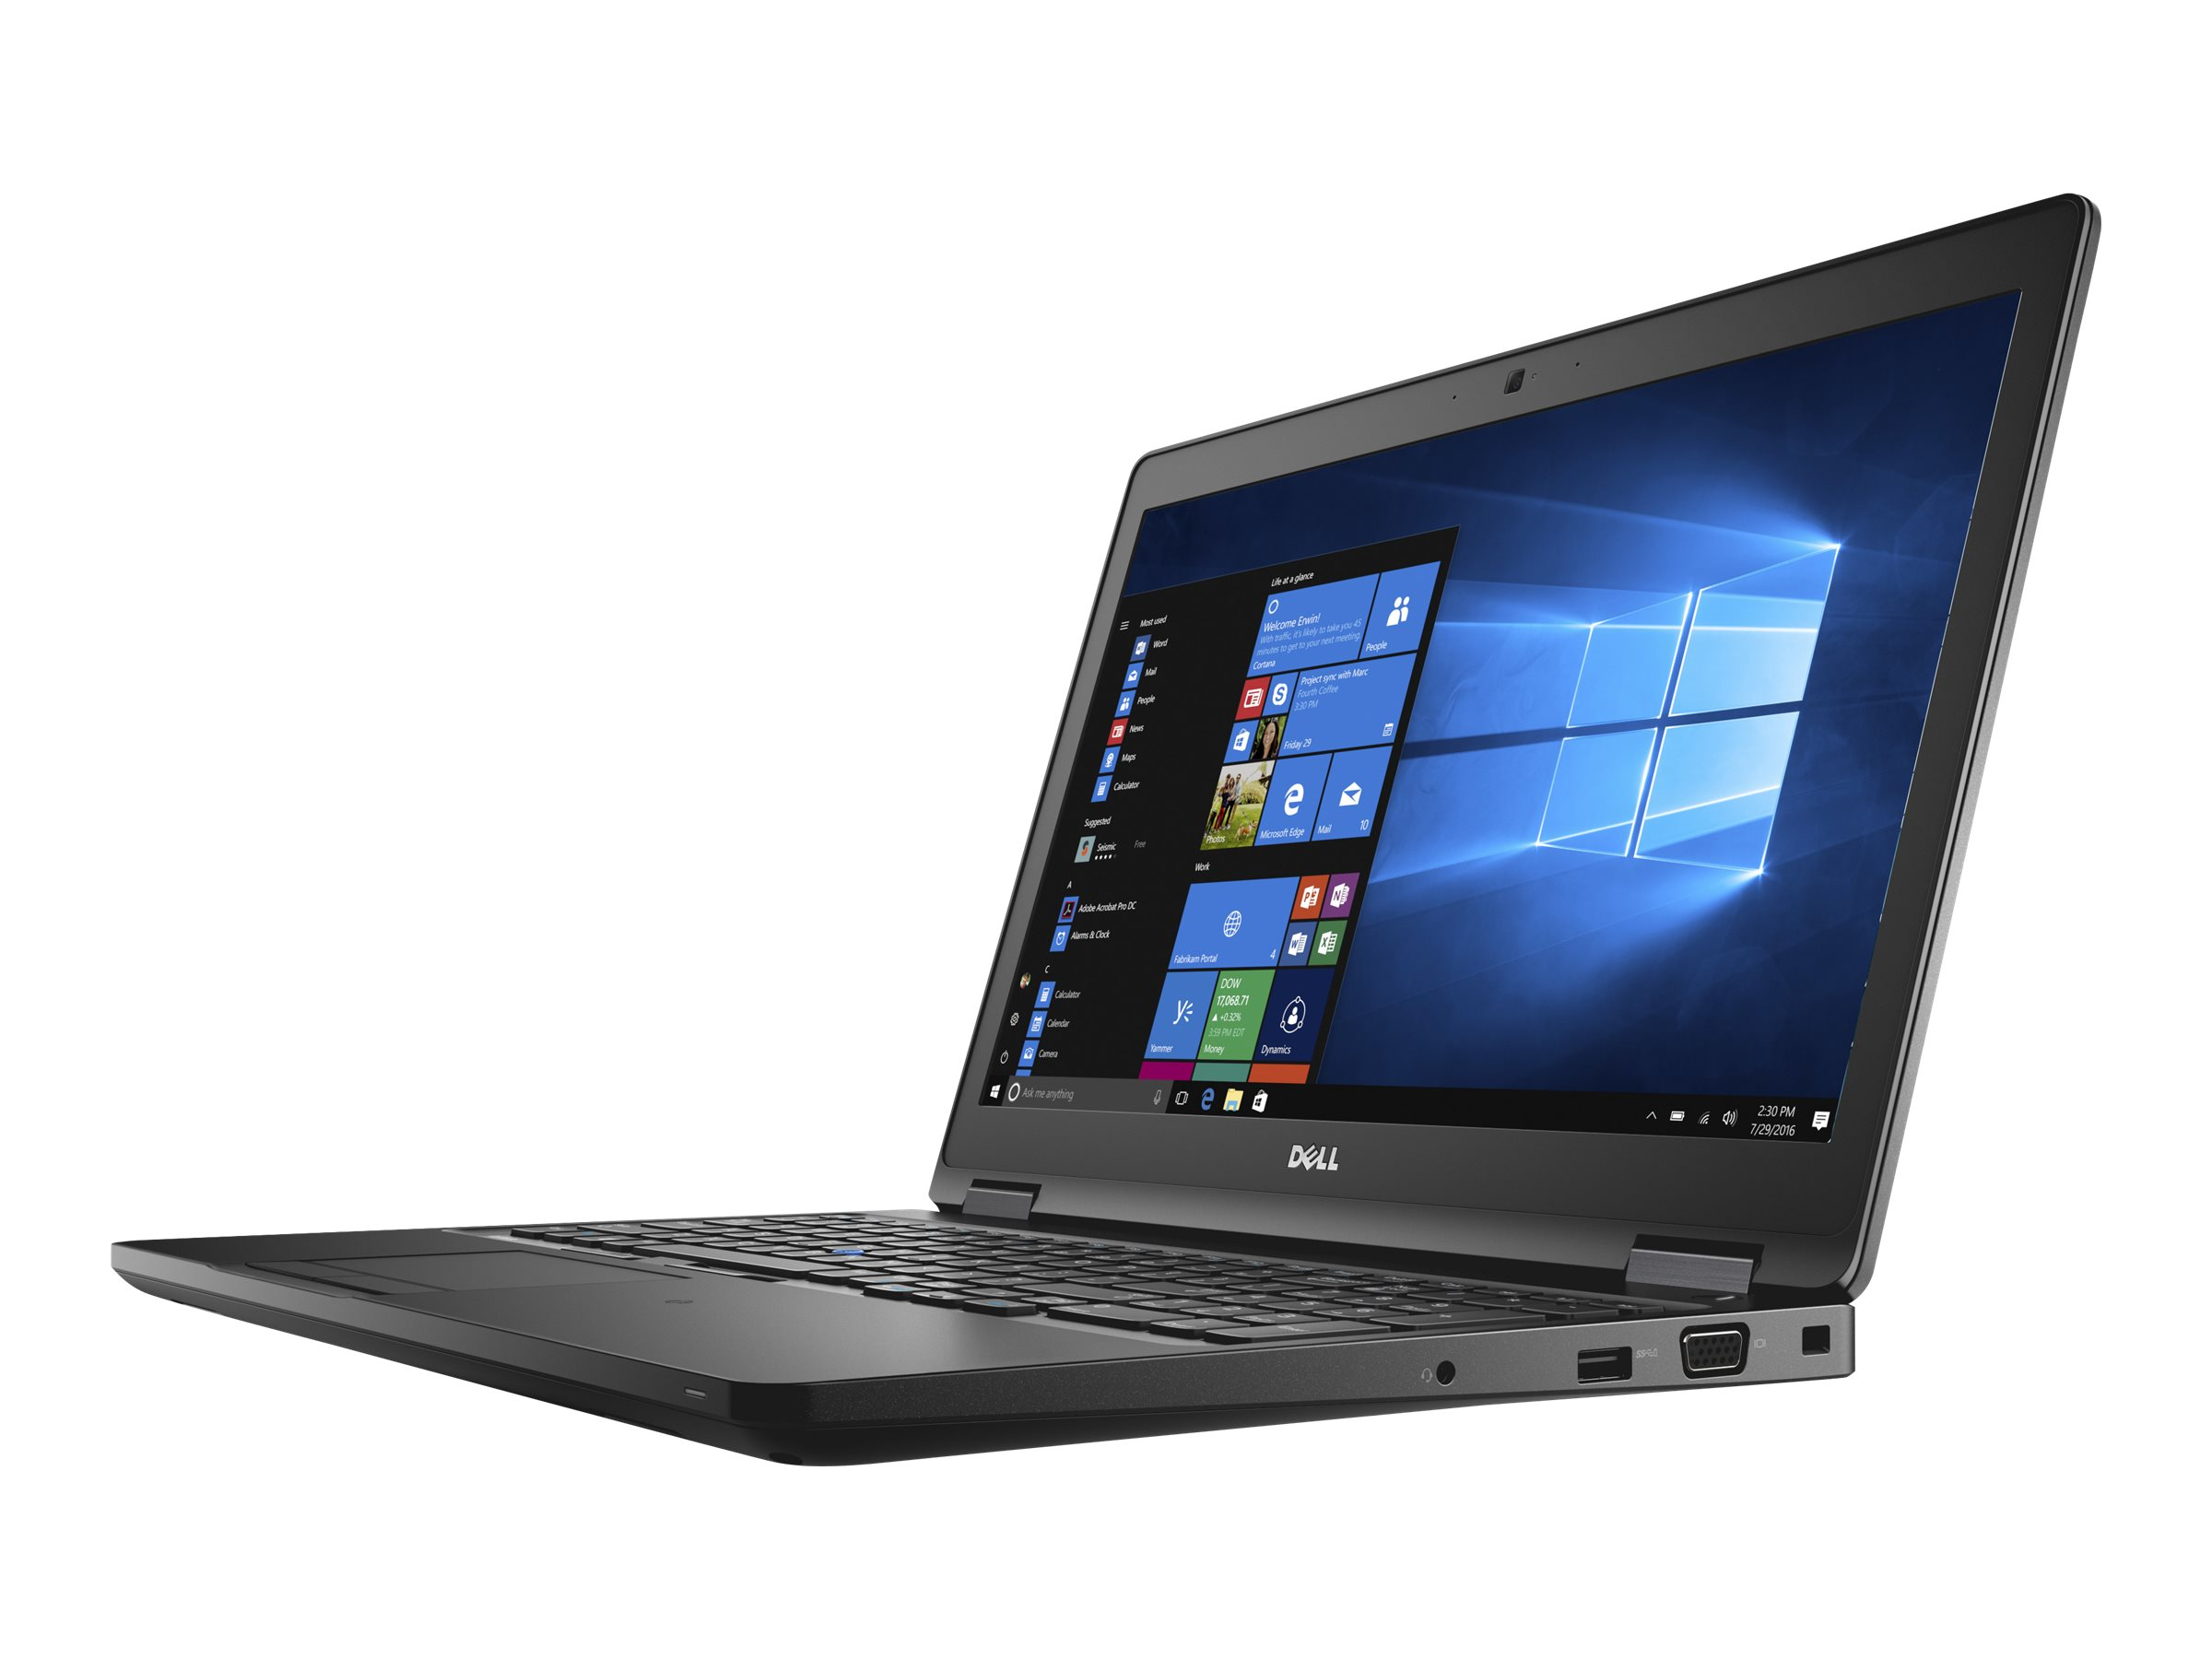 Dell Precision Mobile Workstation 3520 - Core i5 7440HQ / 2.8 GHz - Win 10 Pro 64-Bit - 8 GB RAM - 256 GB SSD - 39.624 cm (15.6